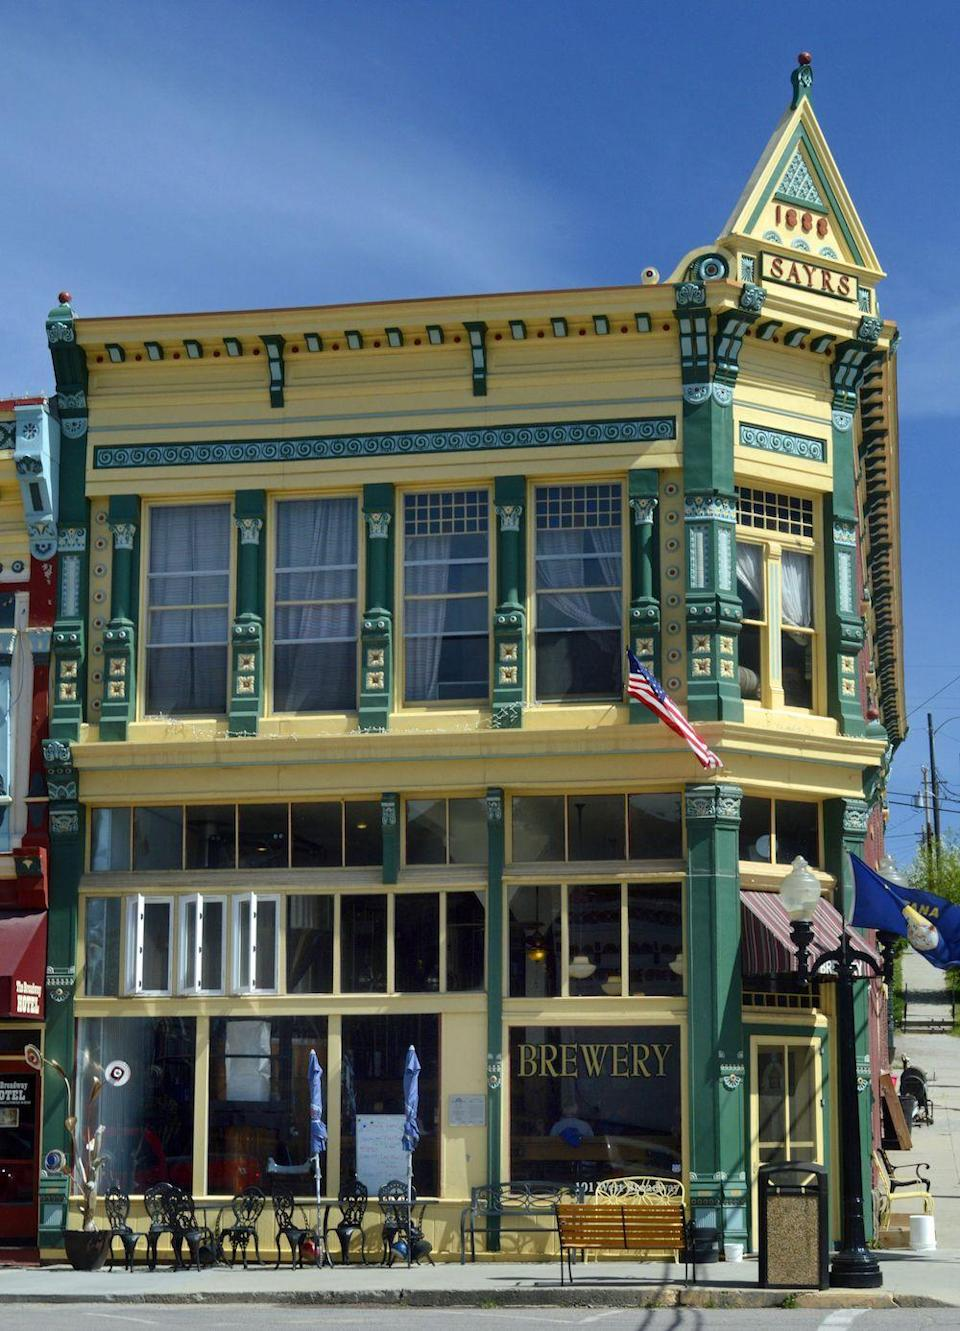 "<p>In the 19th century, Philipsburg was a thriving mining town. Today, it's a place where you can find treasures of the antique variety. (Okay, you can also <a href=""http://www.visitphilipsburg.com/"" rel=""nofollow noopener"" target=""_blank"" data-ylk=""slk:pan for sapphires"" class=""link rapid-noclick-resp"">pan for sapphires</a> here, too.) If all that searching has you parched, there's no better way to quench your thirst than at the <a href=""http://www.visitphilipsburg.com/about-philipsburg/breweries-distilleries.php"" rel=""nofollow noopener"" target=""_blank"" data-ylk=""slk:Philipsburg Brewing Company"" class=""link rapid-noclick-resp"">Philipsburg Brewing Company</a>, housed in the historic Sayers building.</p><p><a href=""https://www.housebeautiful.com/design-inspiration/real-estate/a4224/affordable-montana-mansion-house-tour/"" rel=""nofollow noopener"" target=""_blank"" data-ylk=""slk:Check out a surprisingly affordable Montana mansion »"" class=""link rapid-noclick-resp""><em>Check out a surprisingly affordable Montana mansion »</em></a></p>"